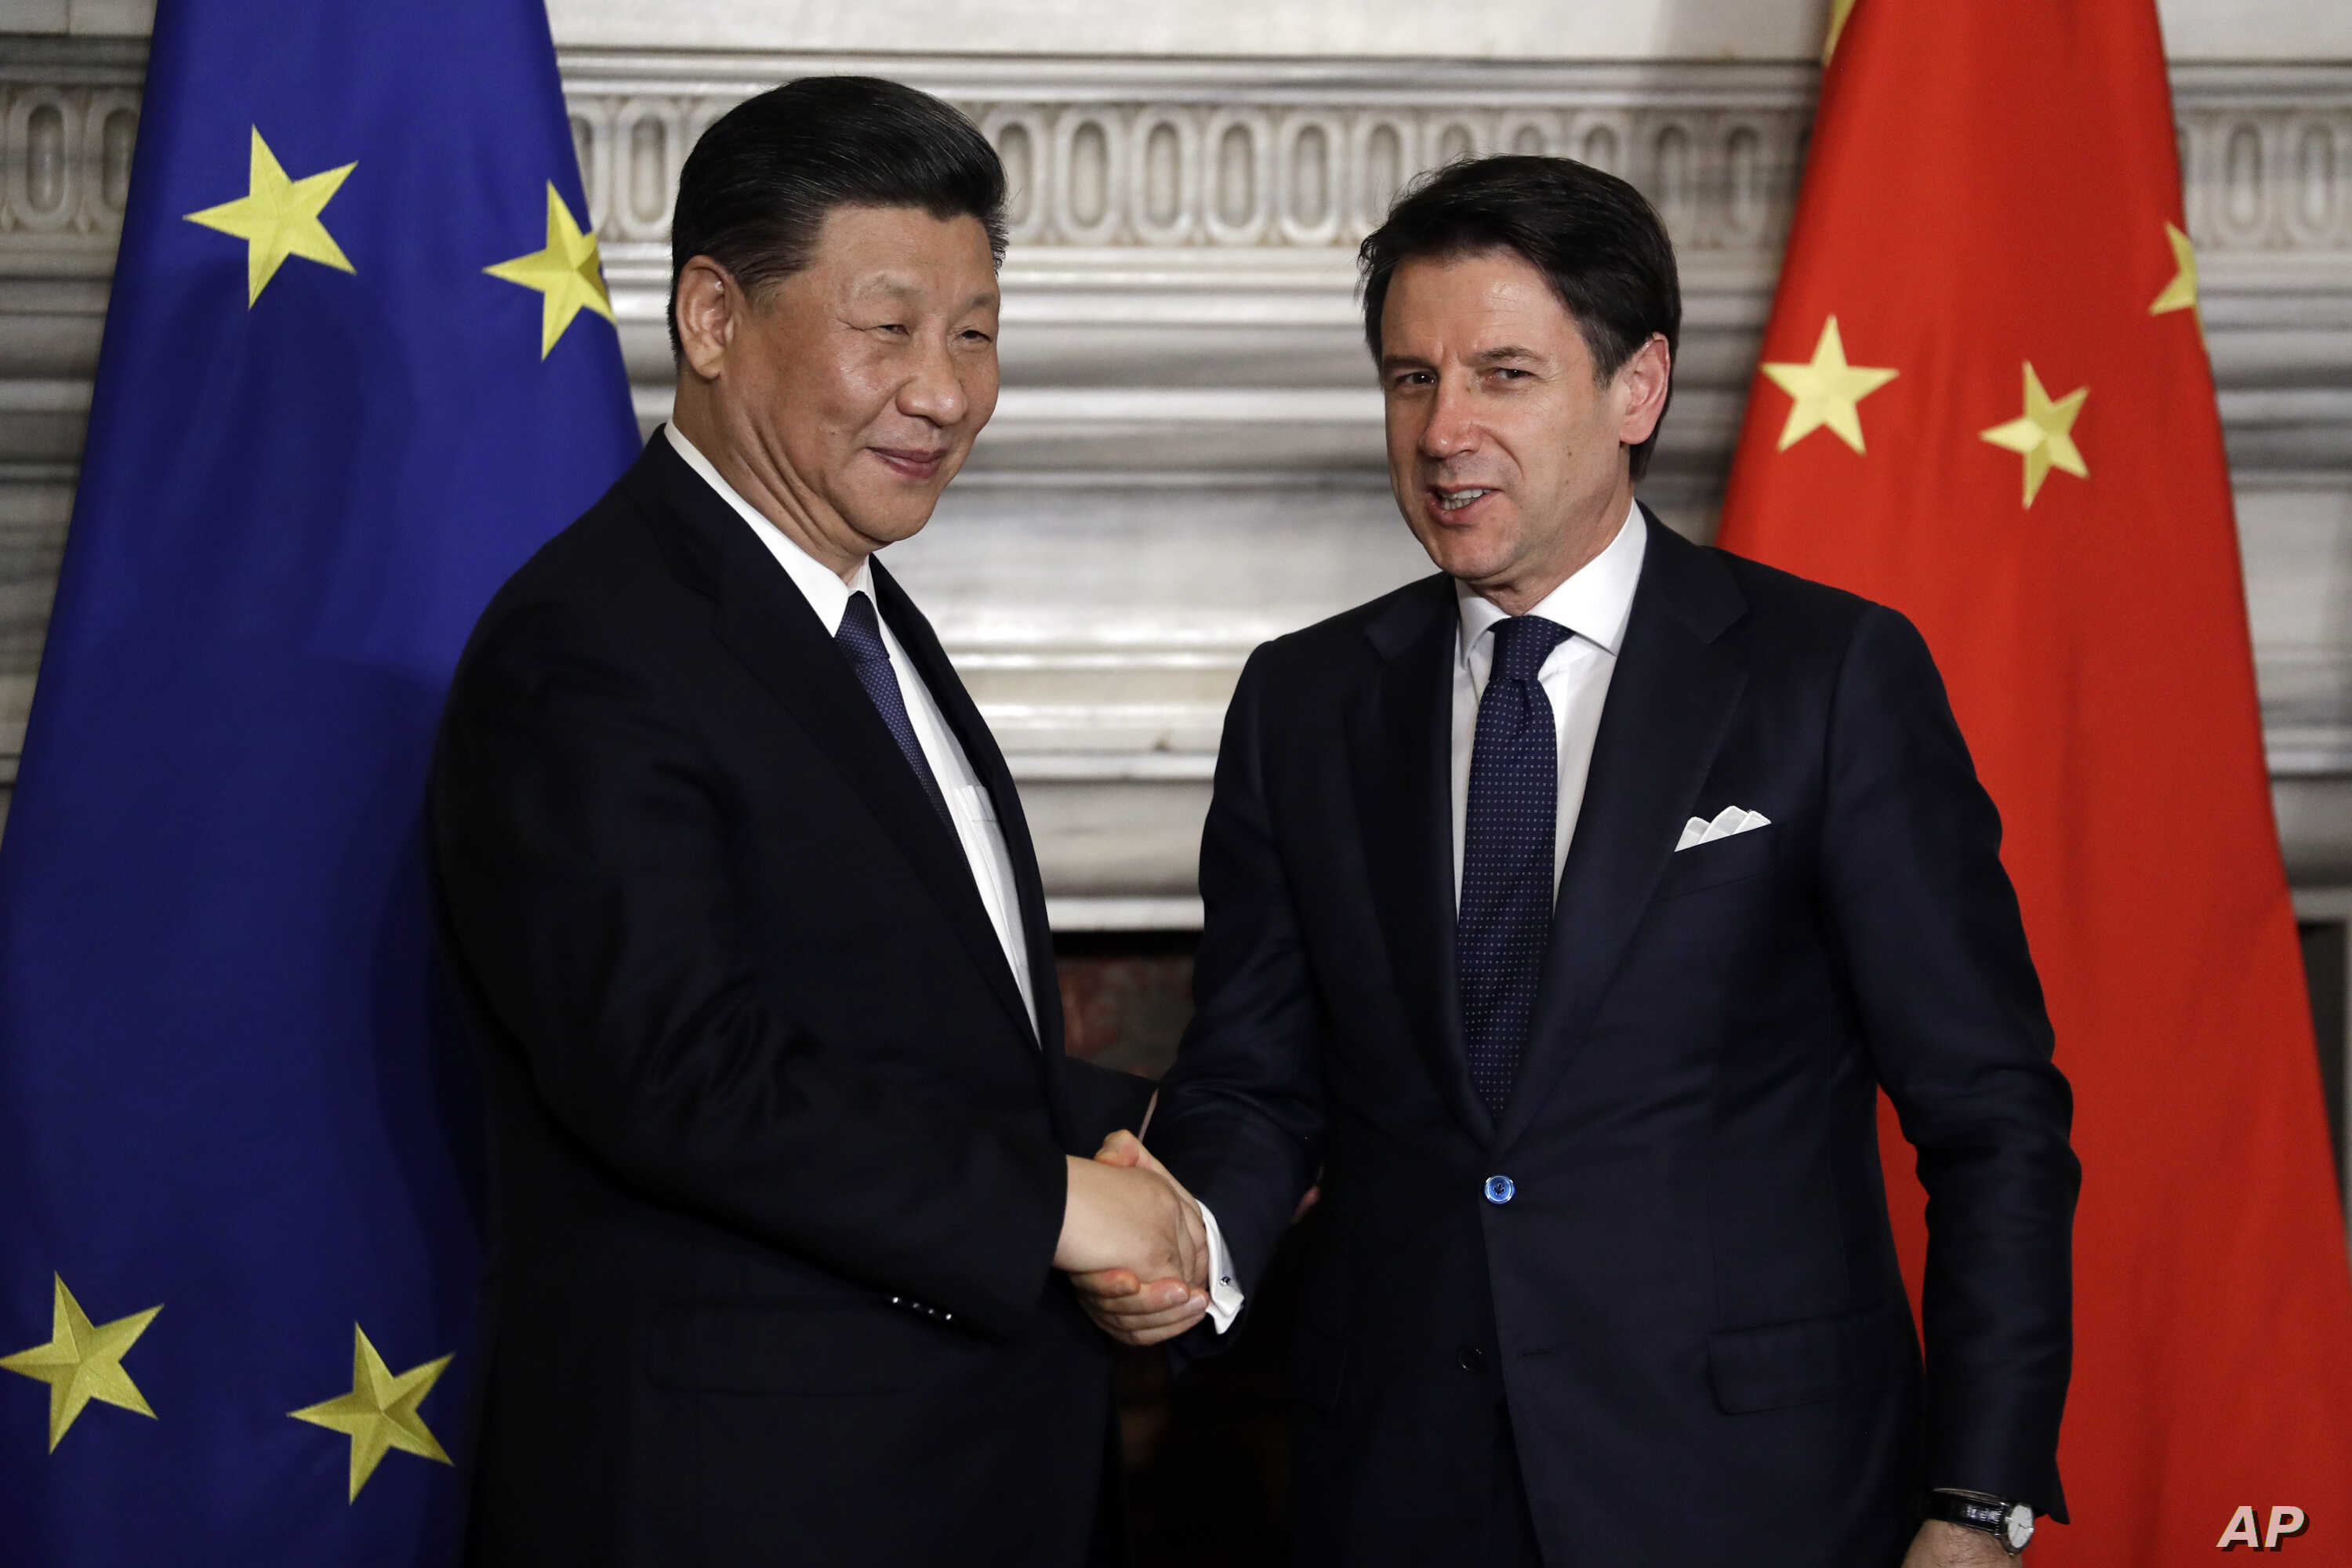 China's New Silk Road May Hurt Italian Workers, Analysts Say